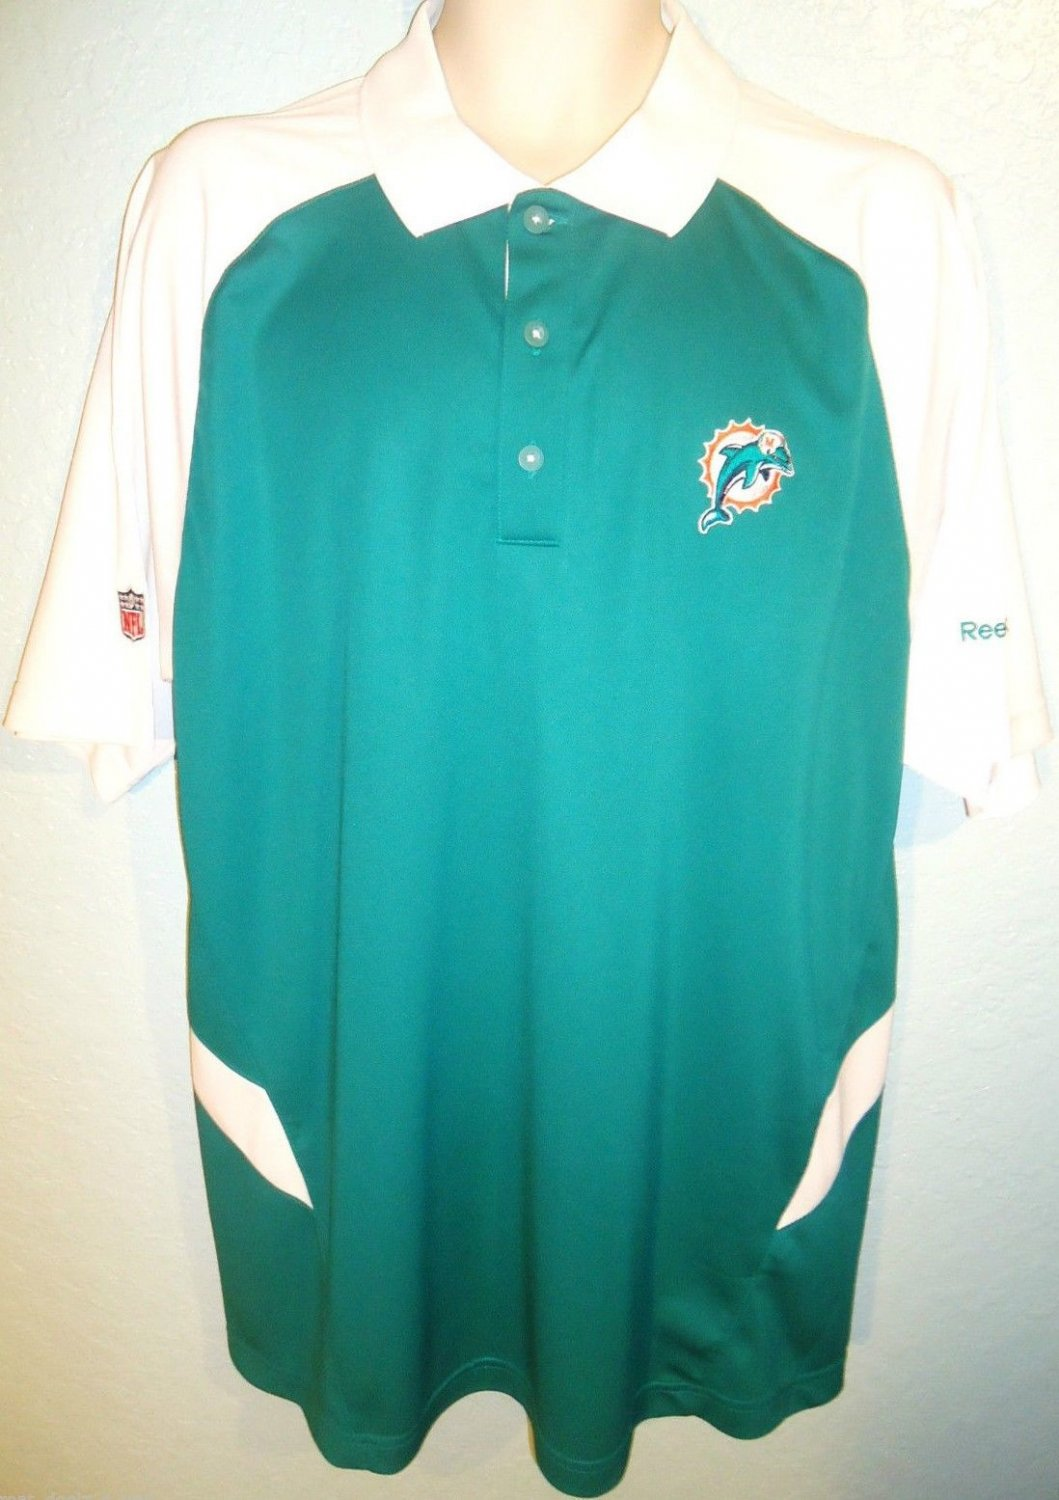 REEBOK - NFL - MIAMI DOLPHINS - FOOTBALL - AFC - WHITE - AQUA - POLO - L - NEW